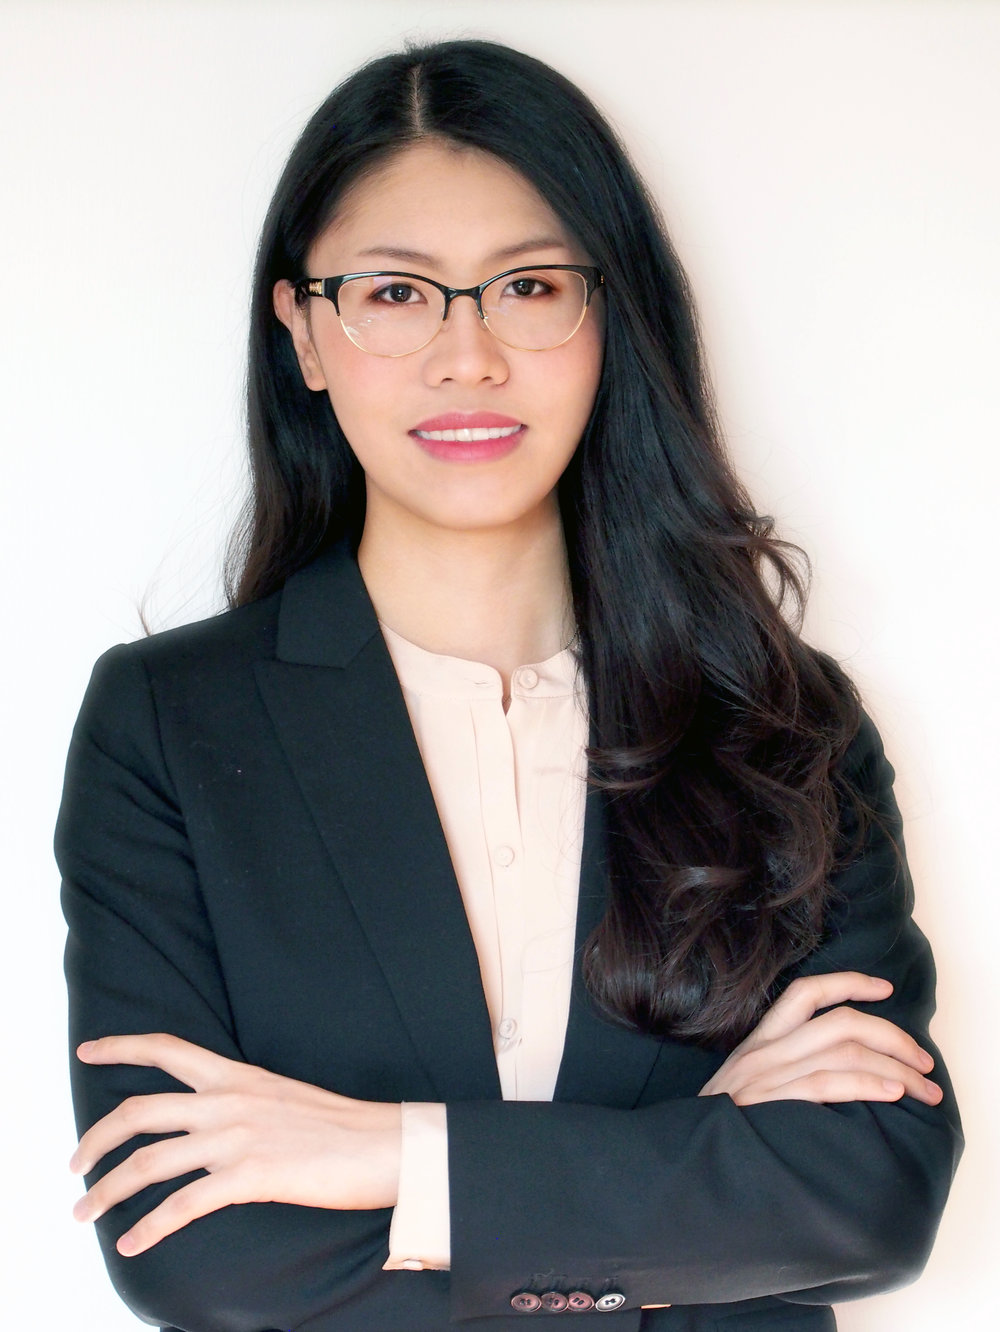 "Jen (Xiao Shi) Chen, Lawyer/Co-founding Partner - Jen is a licensed lawyer and a co-founding partner of JDC Law LLP along with Dandi and Celia. Her practice focuses primarily on managing real estate and corporate/commercial transactions. In particular, Jen enjoys representing clients in real estate leasing matters, including assisting clients with drafting, review, and negotiation.Jen's approach to legal services is the utmost commitment to her clients. She is determined to provide a level of service and guidance that would bring value to her clients. Jen is a firm believer of unique solutions and is both creative and proactive. Jen always keep her clients informed and involved in all step of the way.Prior to JDC Law, Jen completed her articles with a downtown Toronto firm annually ranked as a top 5 commercial real estate boutique law firm in Canada. Jen has also worked at one of the busiest Toronto residential real estate law firm. Over the years, she provided excellent services to clients in both corporate/commercial real estate and residential real estate practice areas.Interesting Facts: Jen was born as a member of an ethnic minority group in China (the ""Bai"" people). Jen is an animal lover and a proud amateur chef. Jen's meaningful quote to share: ""Very little is needed to make a happy life; it is all within yourself in your way of thinking.""Memberships:Law Society of Upper CanadaCanadian Bar AssociationOntario Bar Association – Real Estate and LeasingToronto Lawyers AssociationEducation and Qualifications:Bar of OntarioOsgoode Hall Law School, J.D.Queen's University, B.A. Honours (Psychology)"